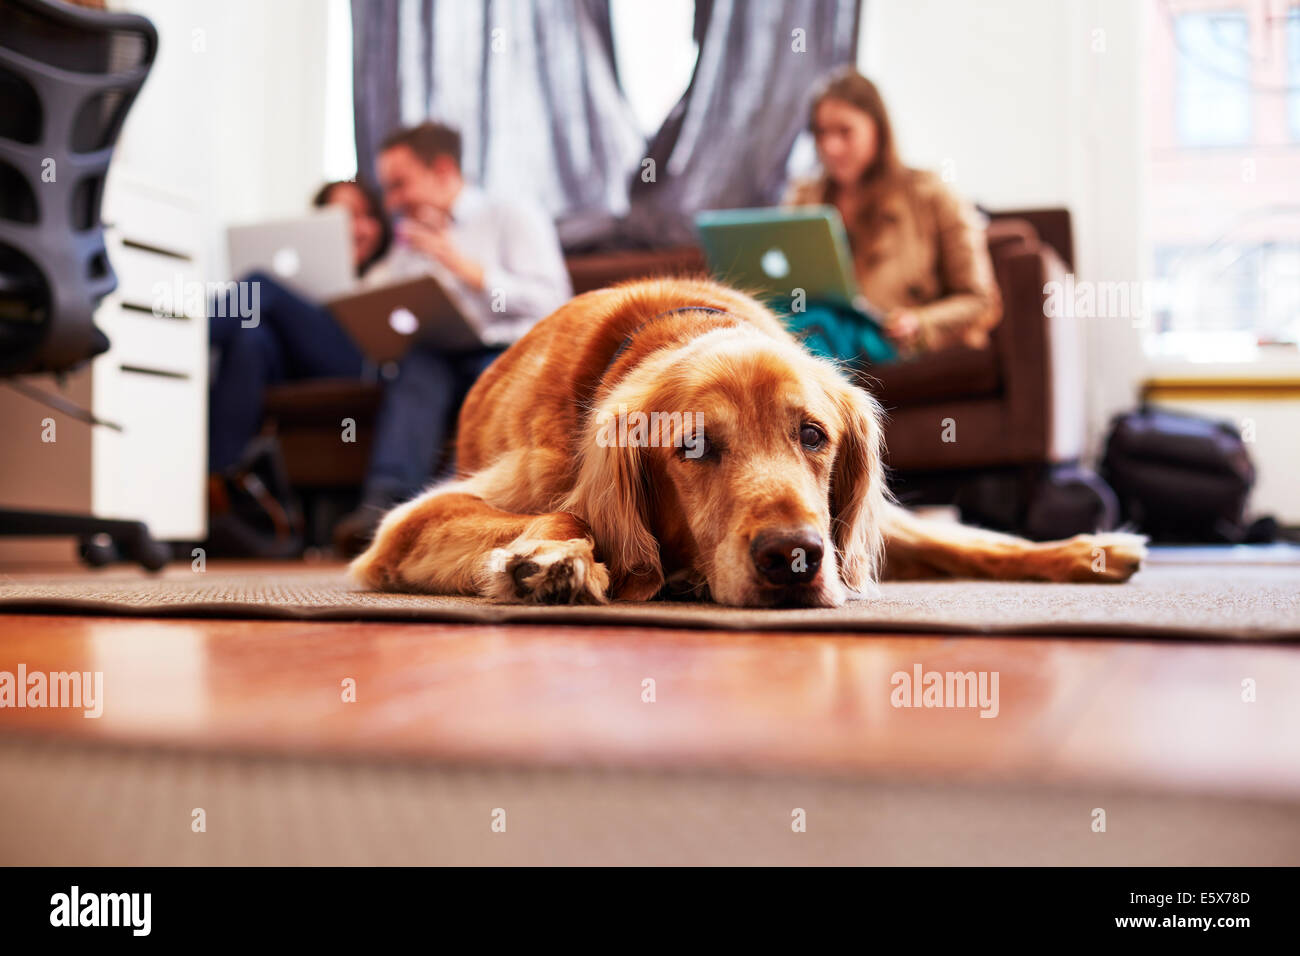 Portrait of bored dog lying on rug, people on laptops in background - Stock Image